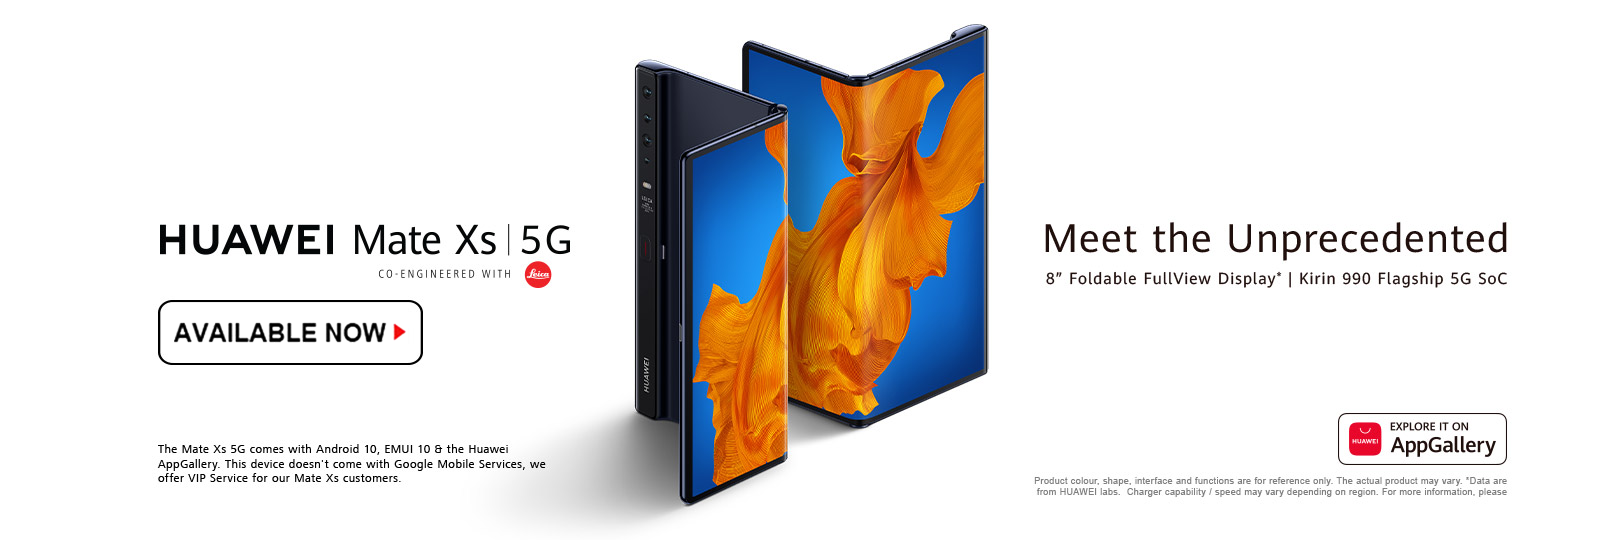 Huawei Mate Xs - Available Now